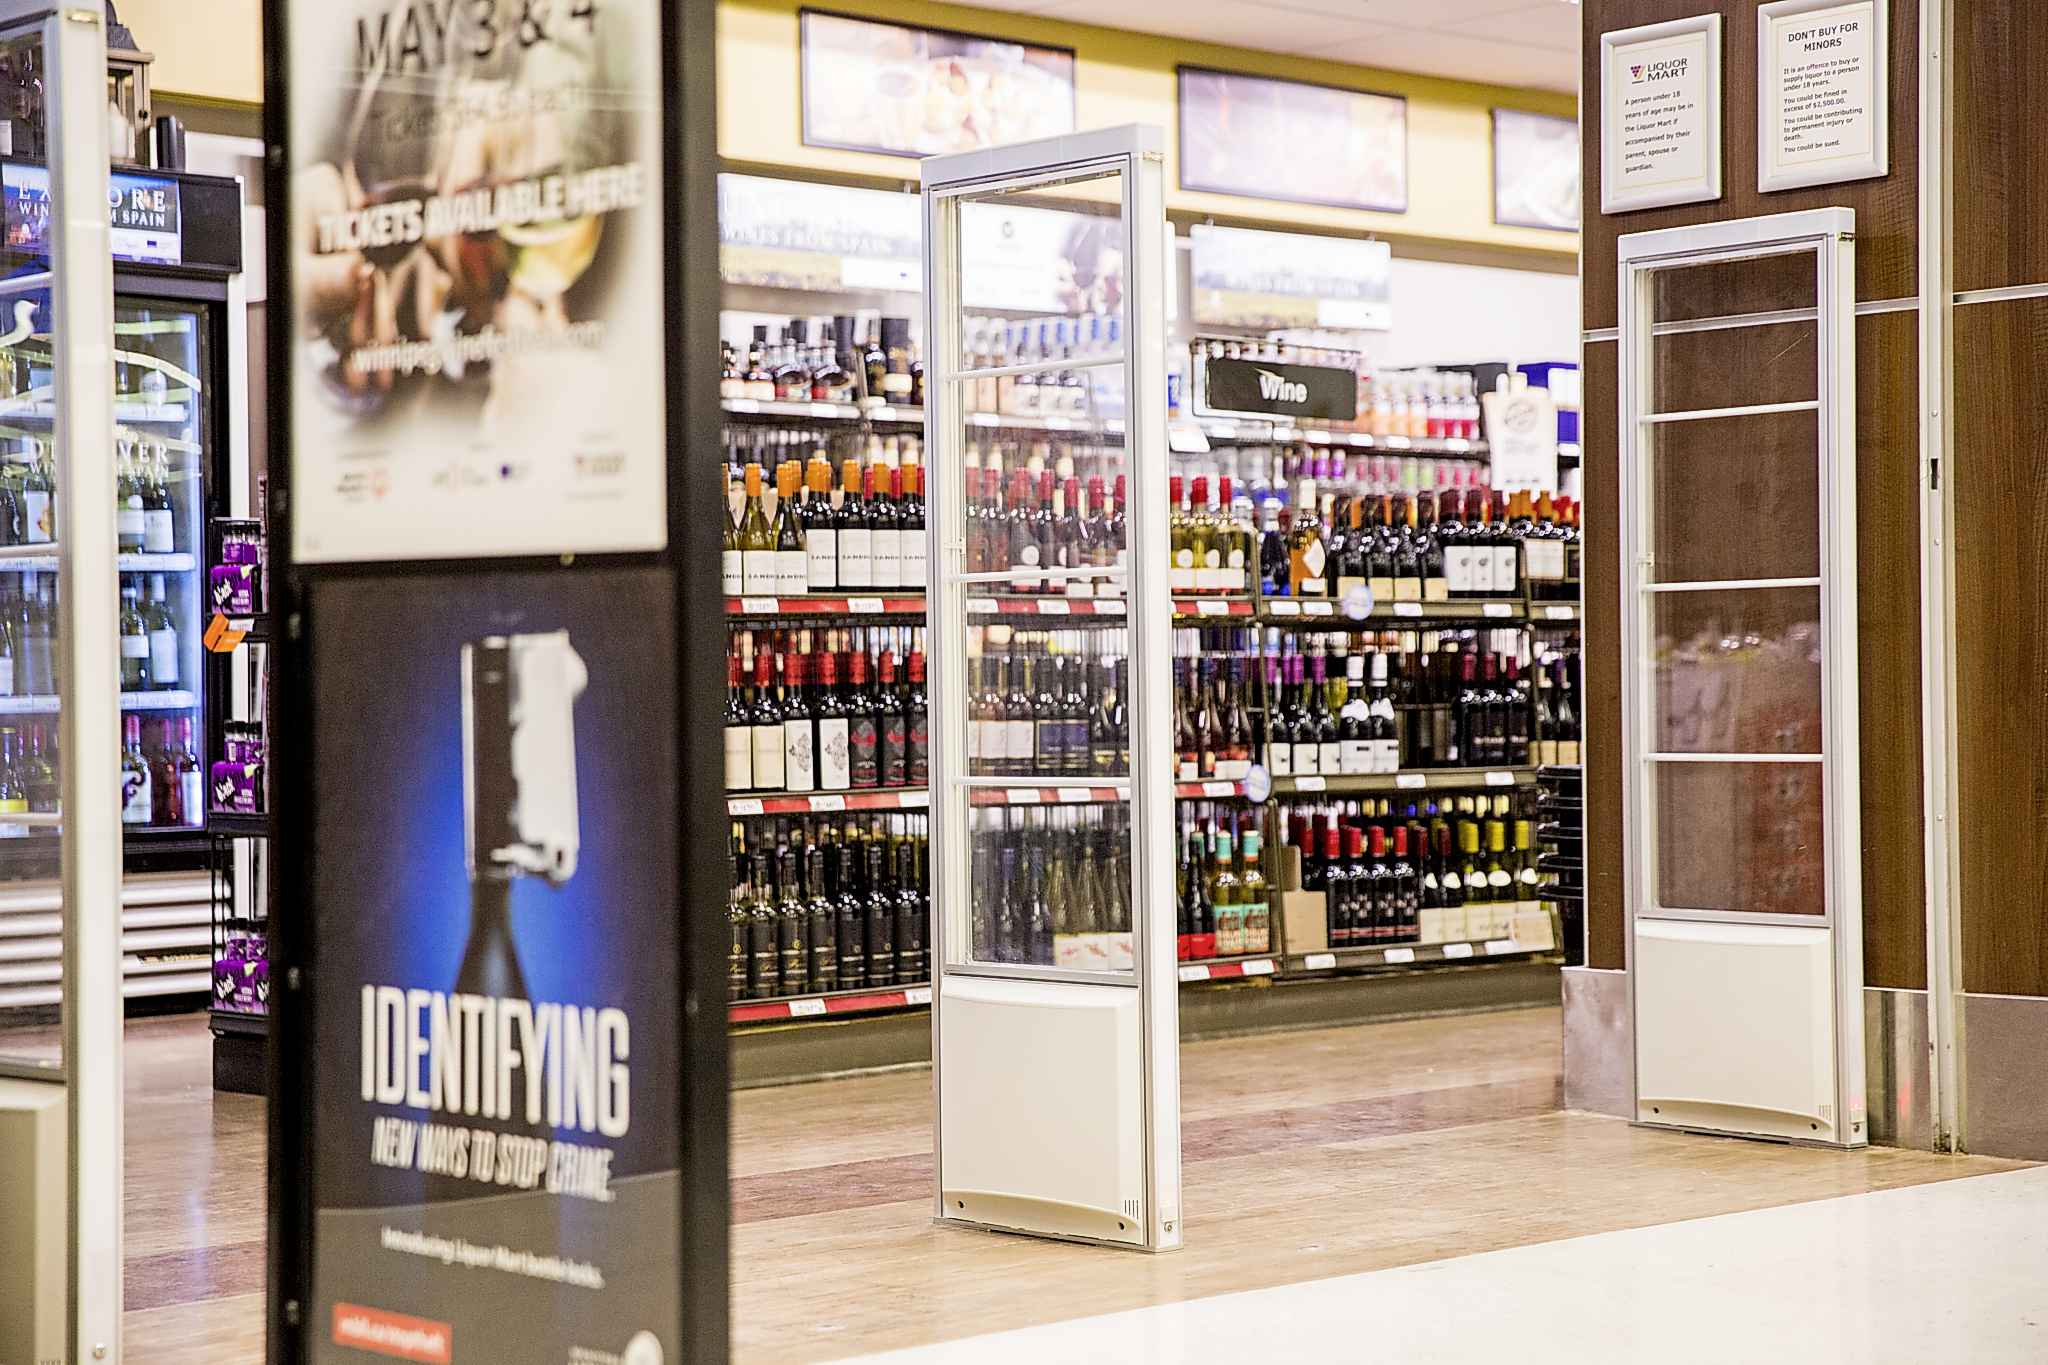 Active alarm systems have been installed at the St. James Superstore Liquor Mart outlet. (Mikaela MacKenzie / Winnipeg Free Press files)